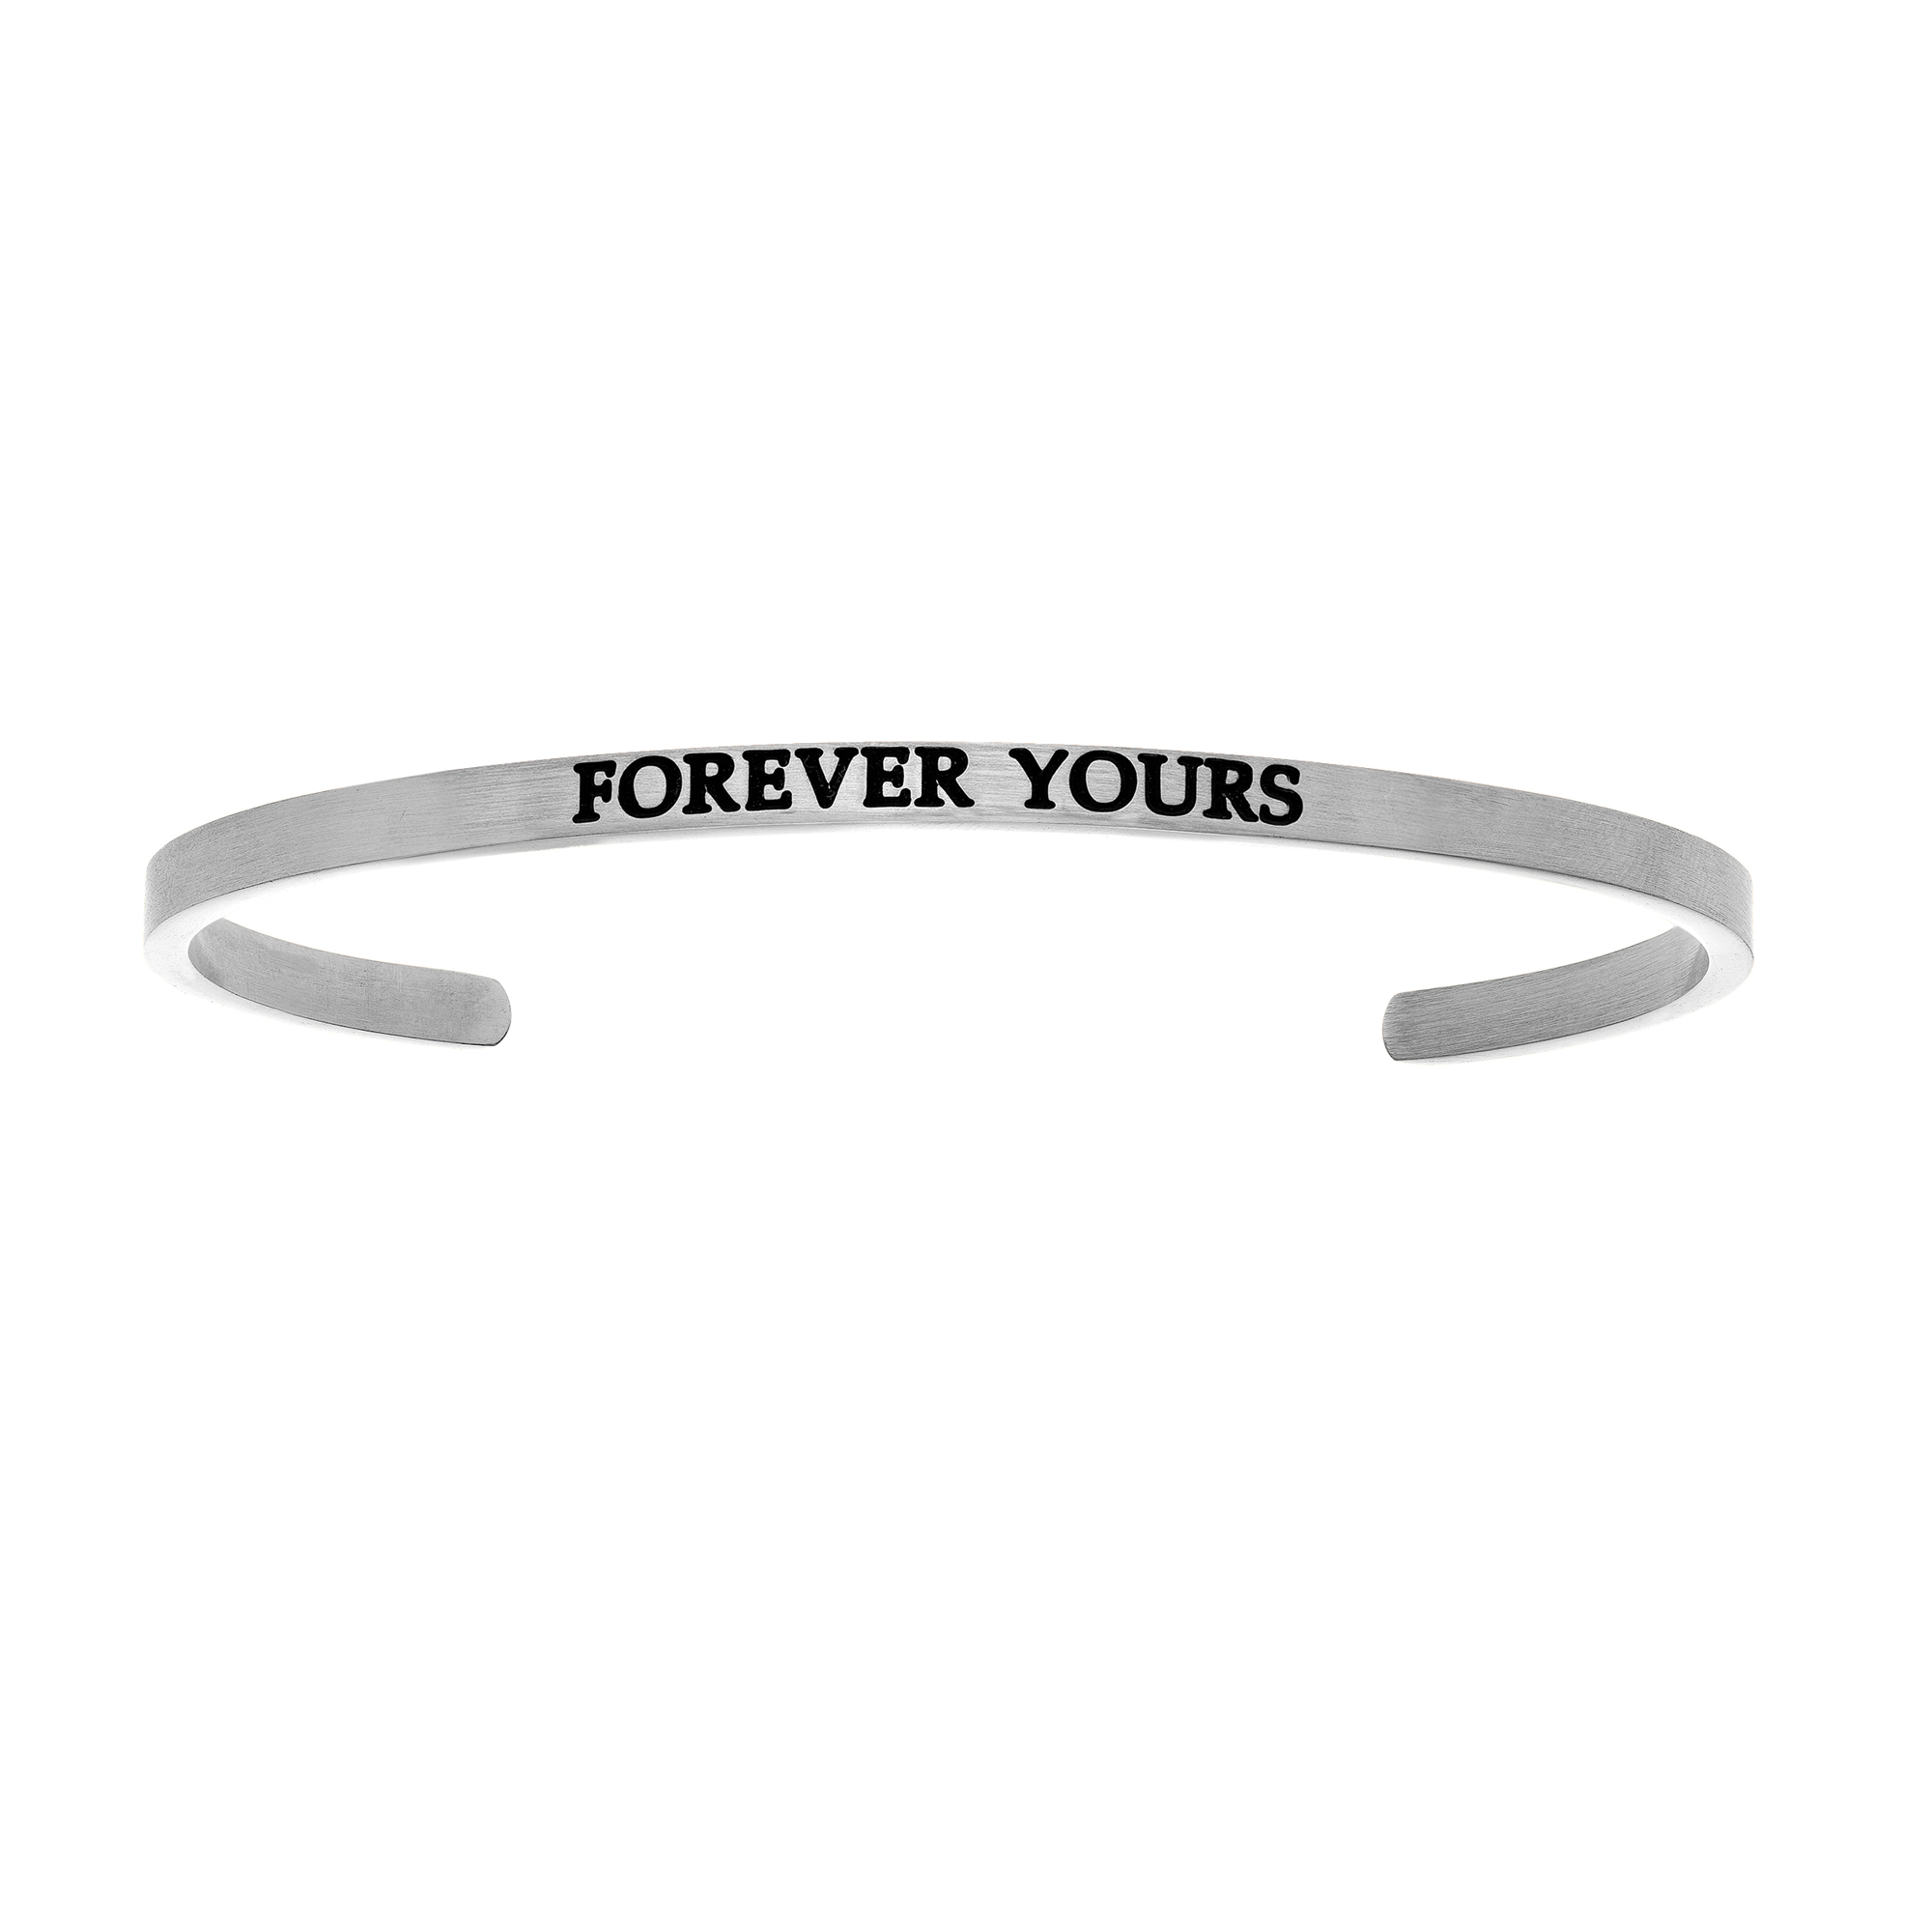 Intuitions Stainless Steel FOREVER YOURS Diamond Accent Cuff Bangle Bracelet, 7″